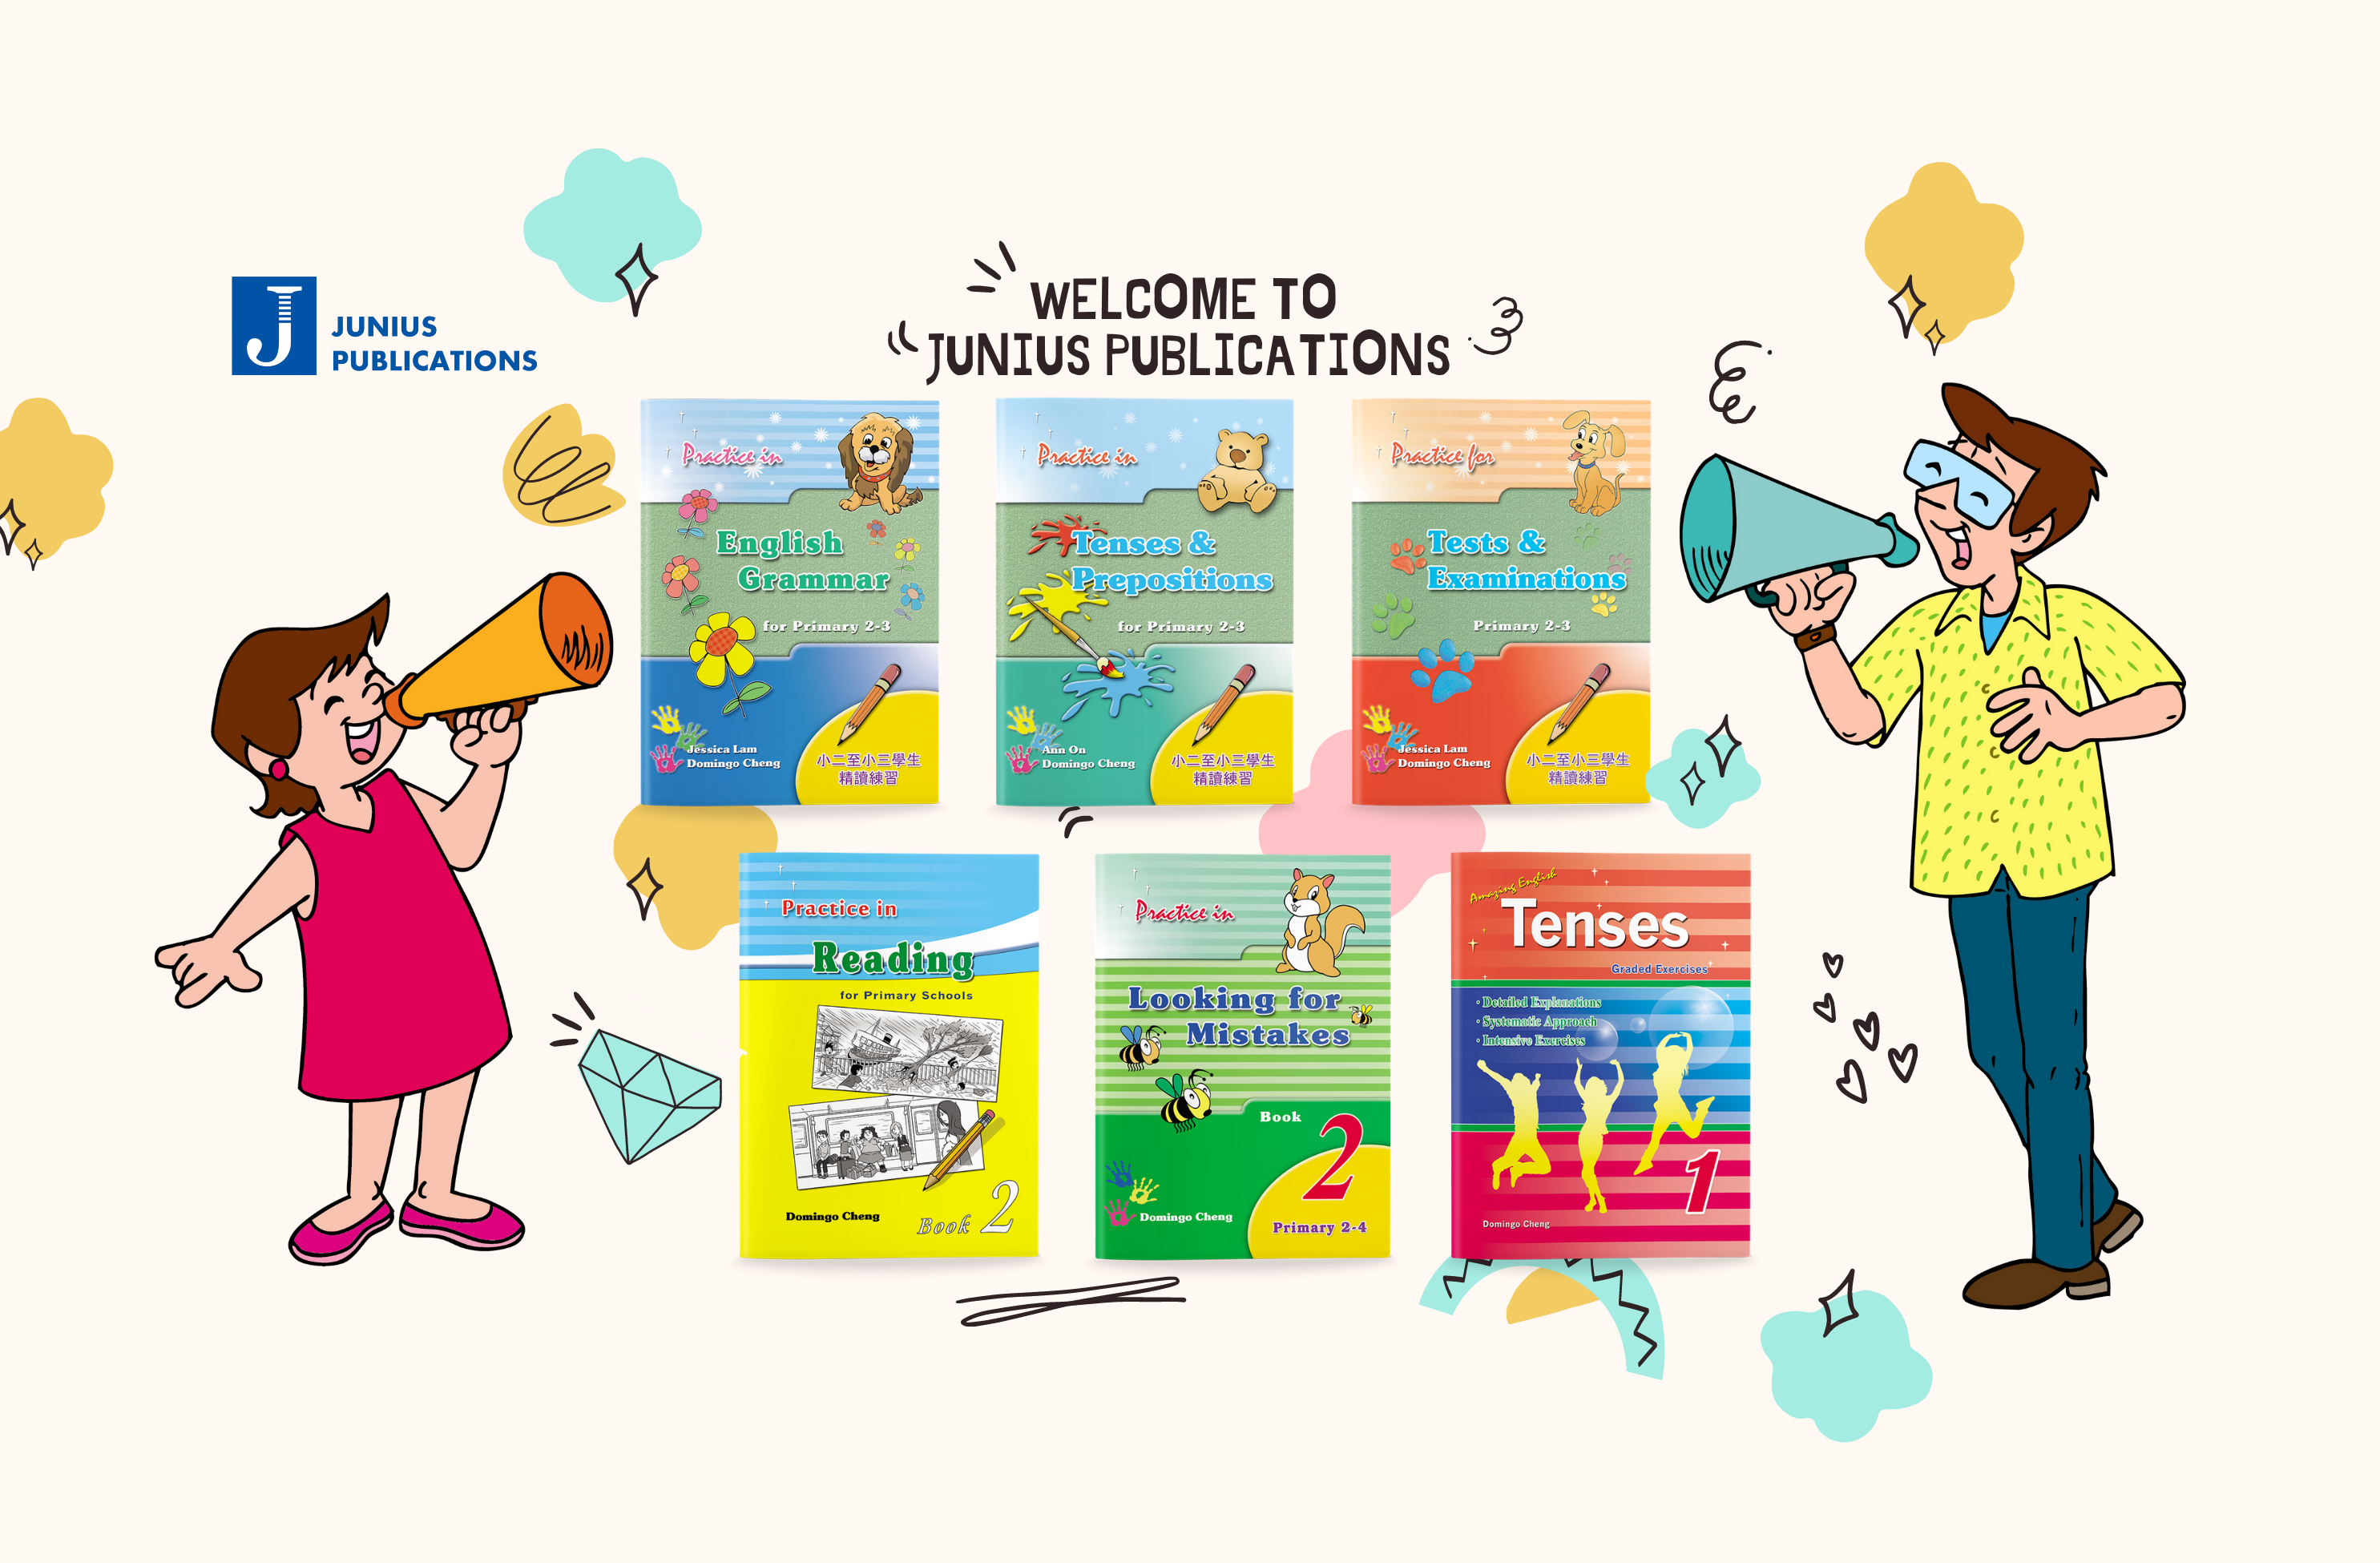 Welcome to Junius Publications